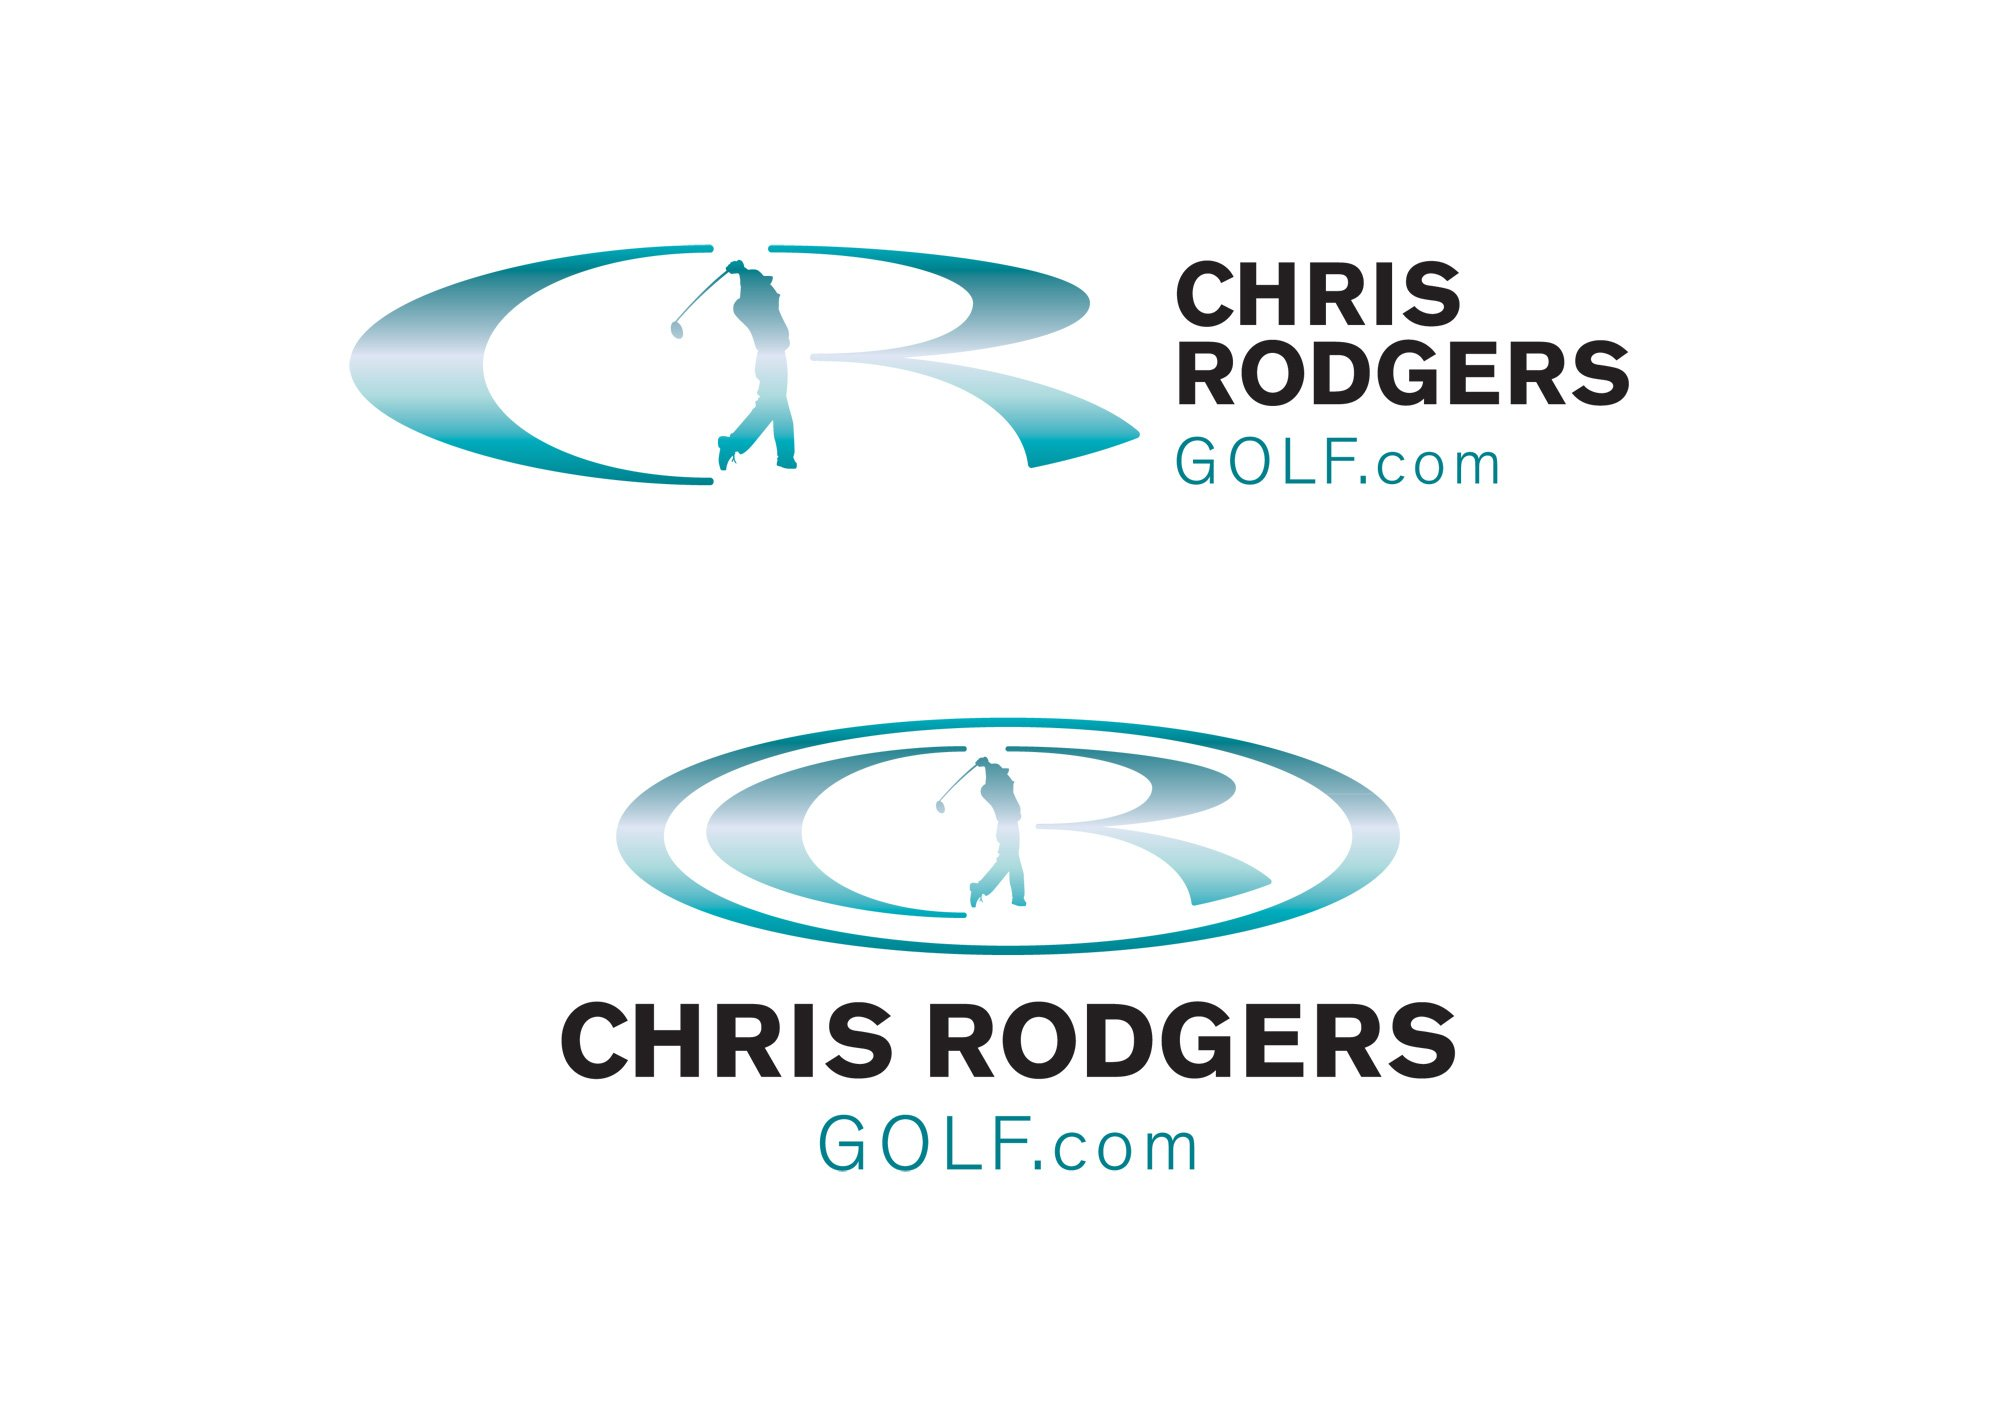 Chris Rodgers Golf